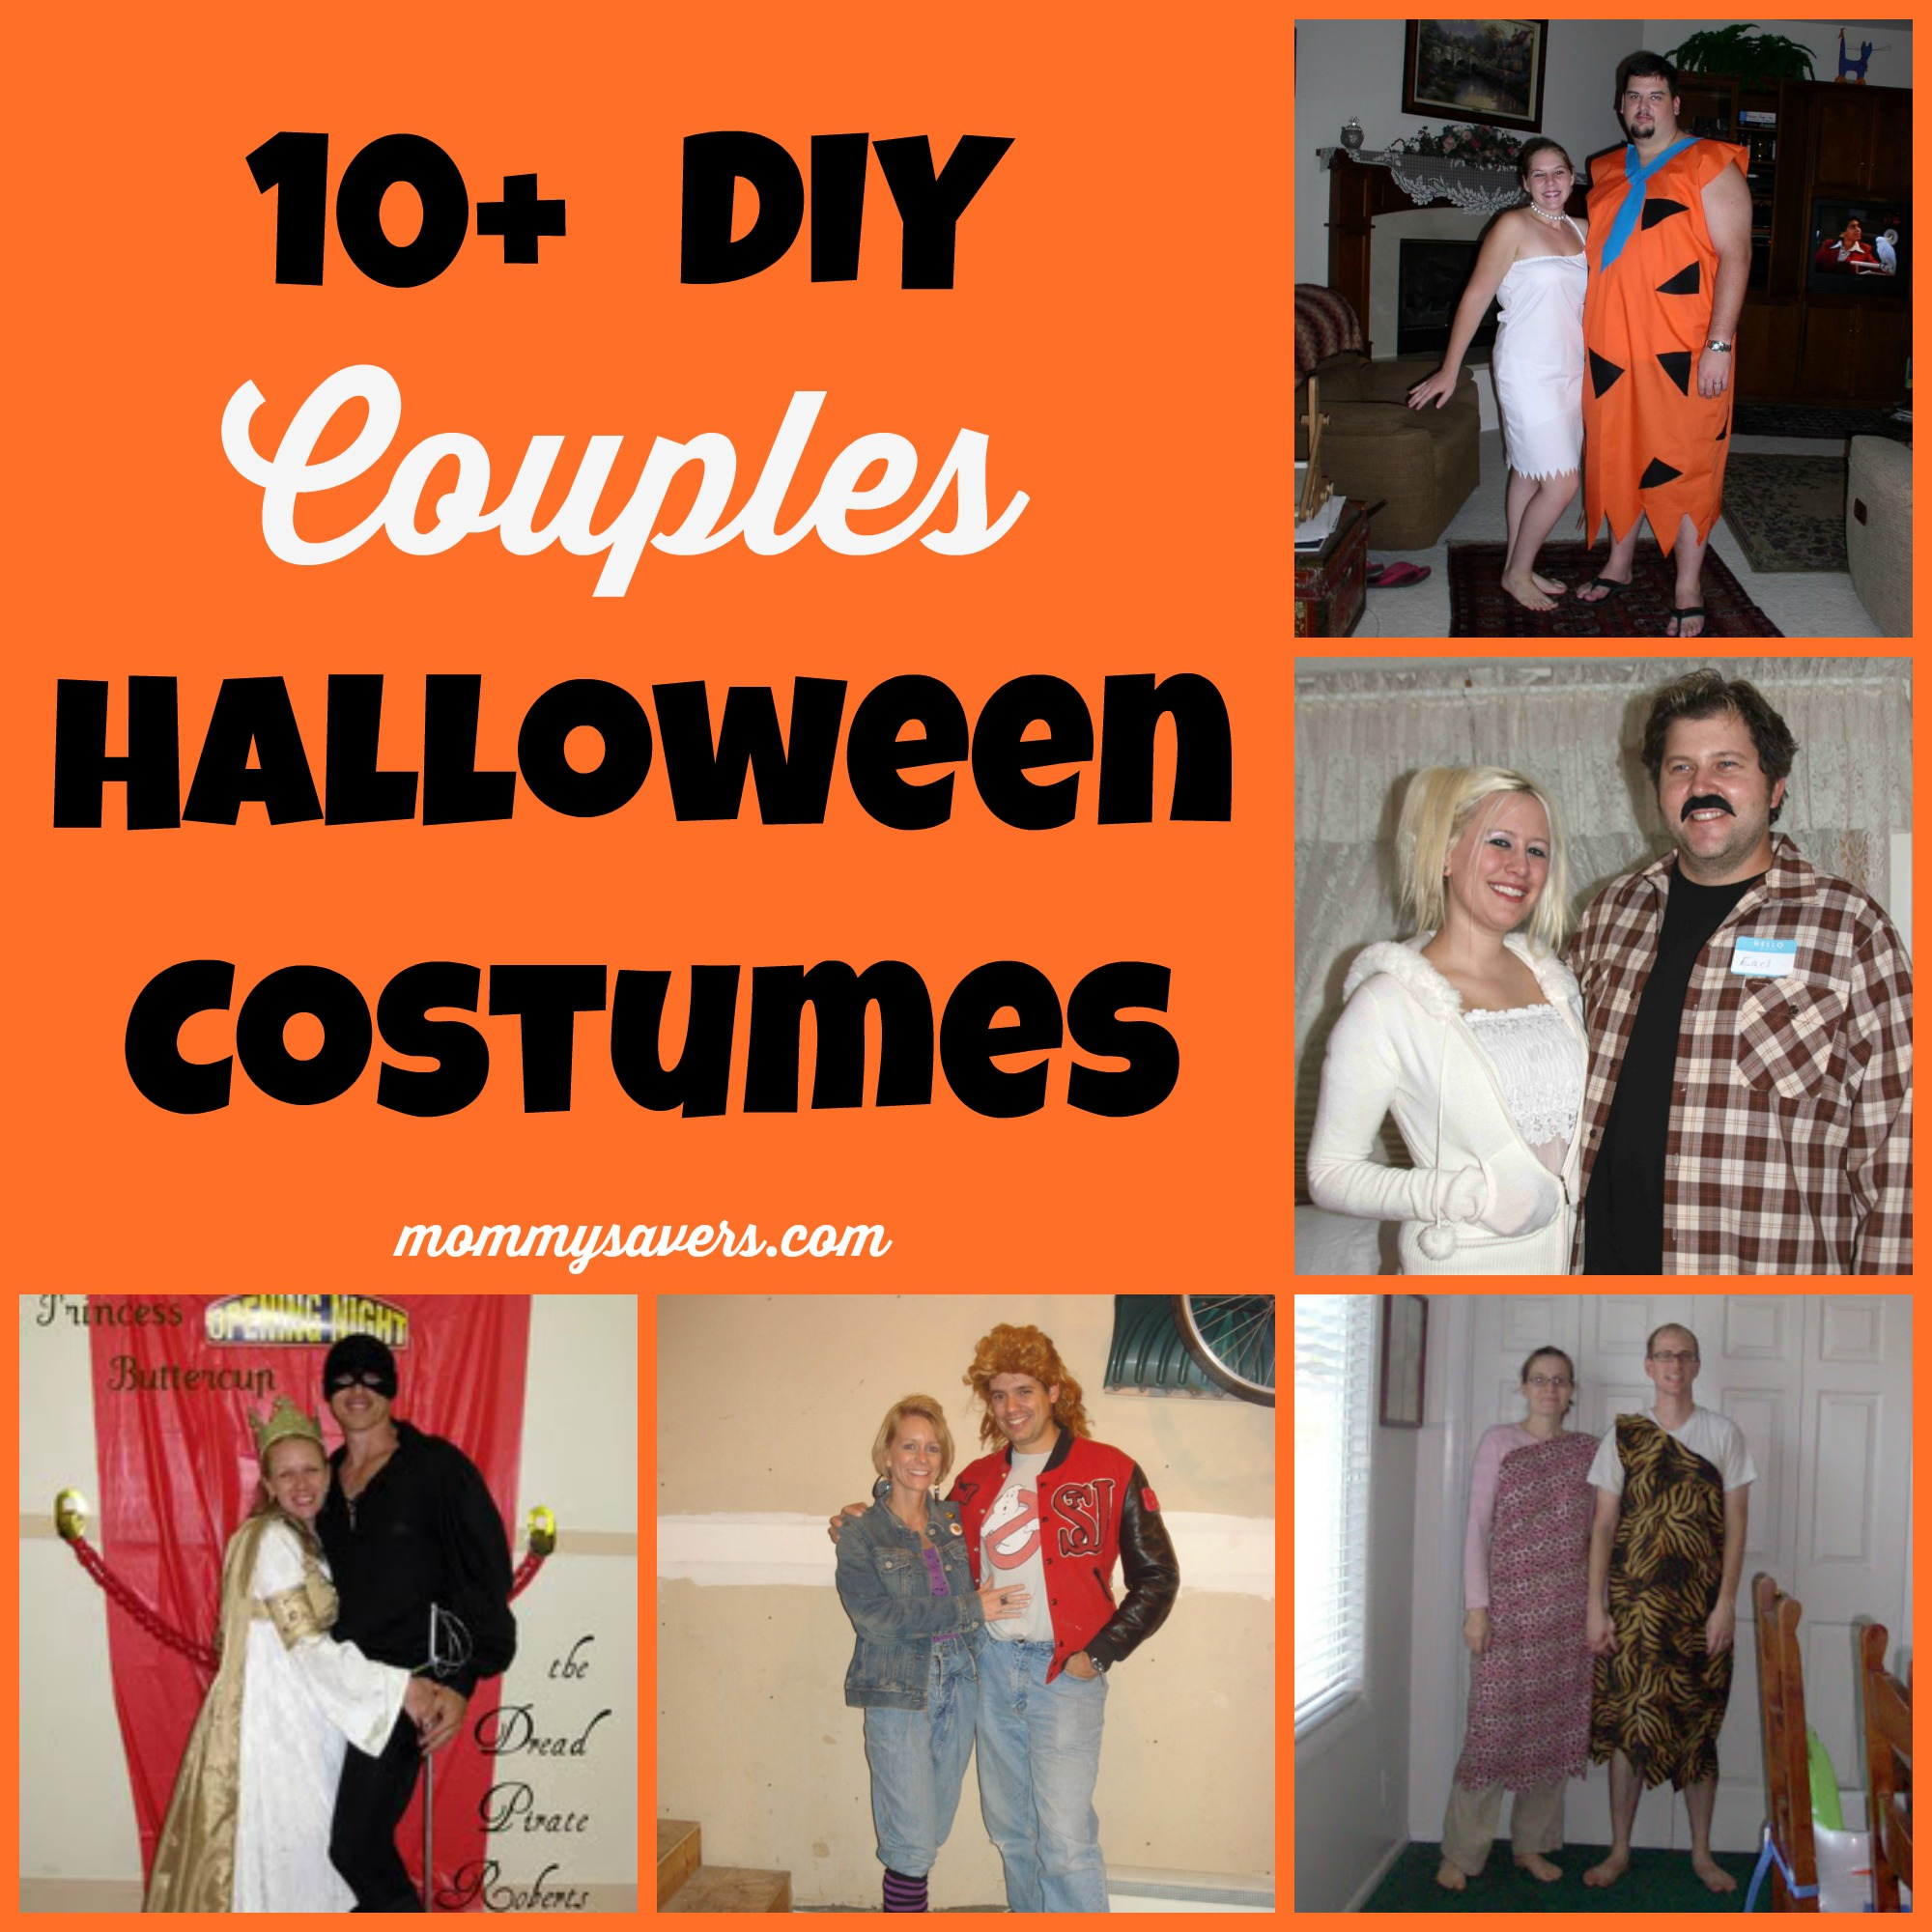 diy couples halloween costumes (10+ ideas) - mommysavers